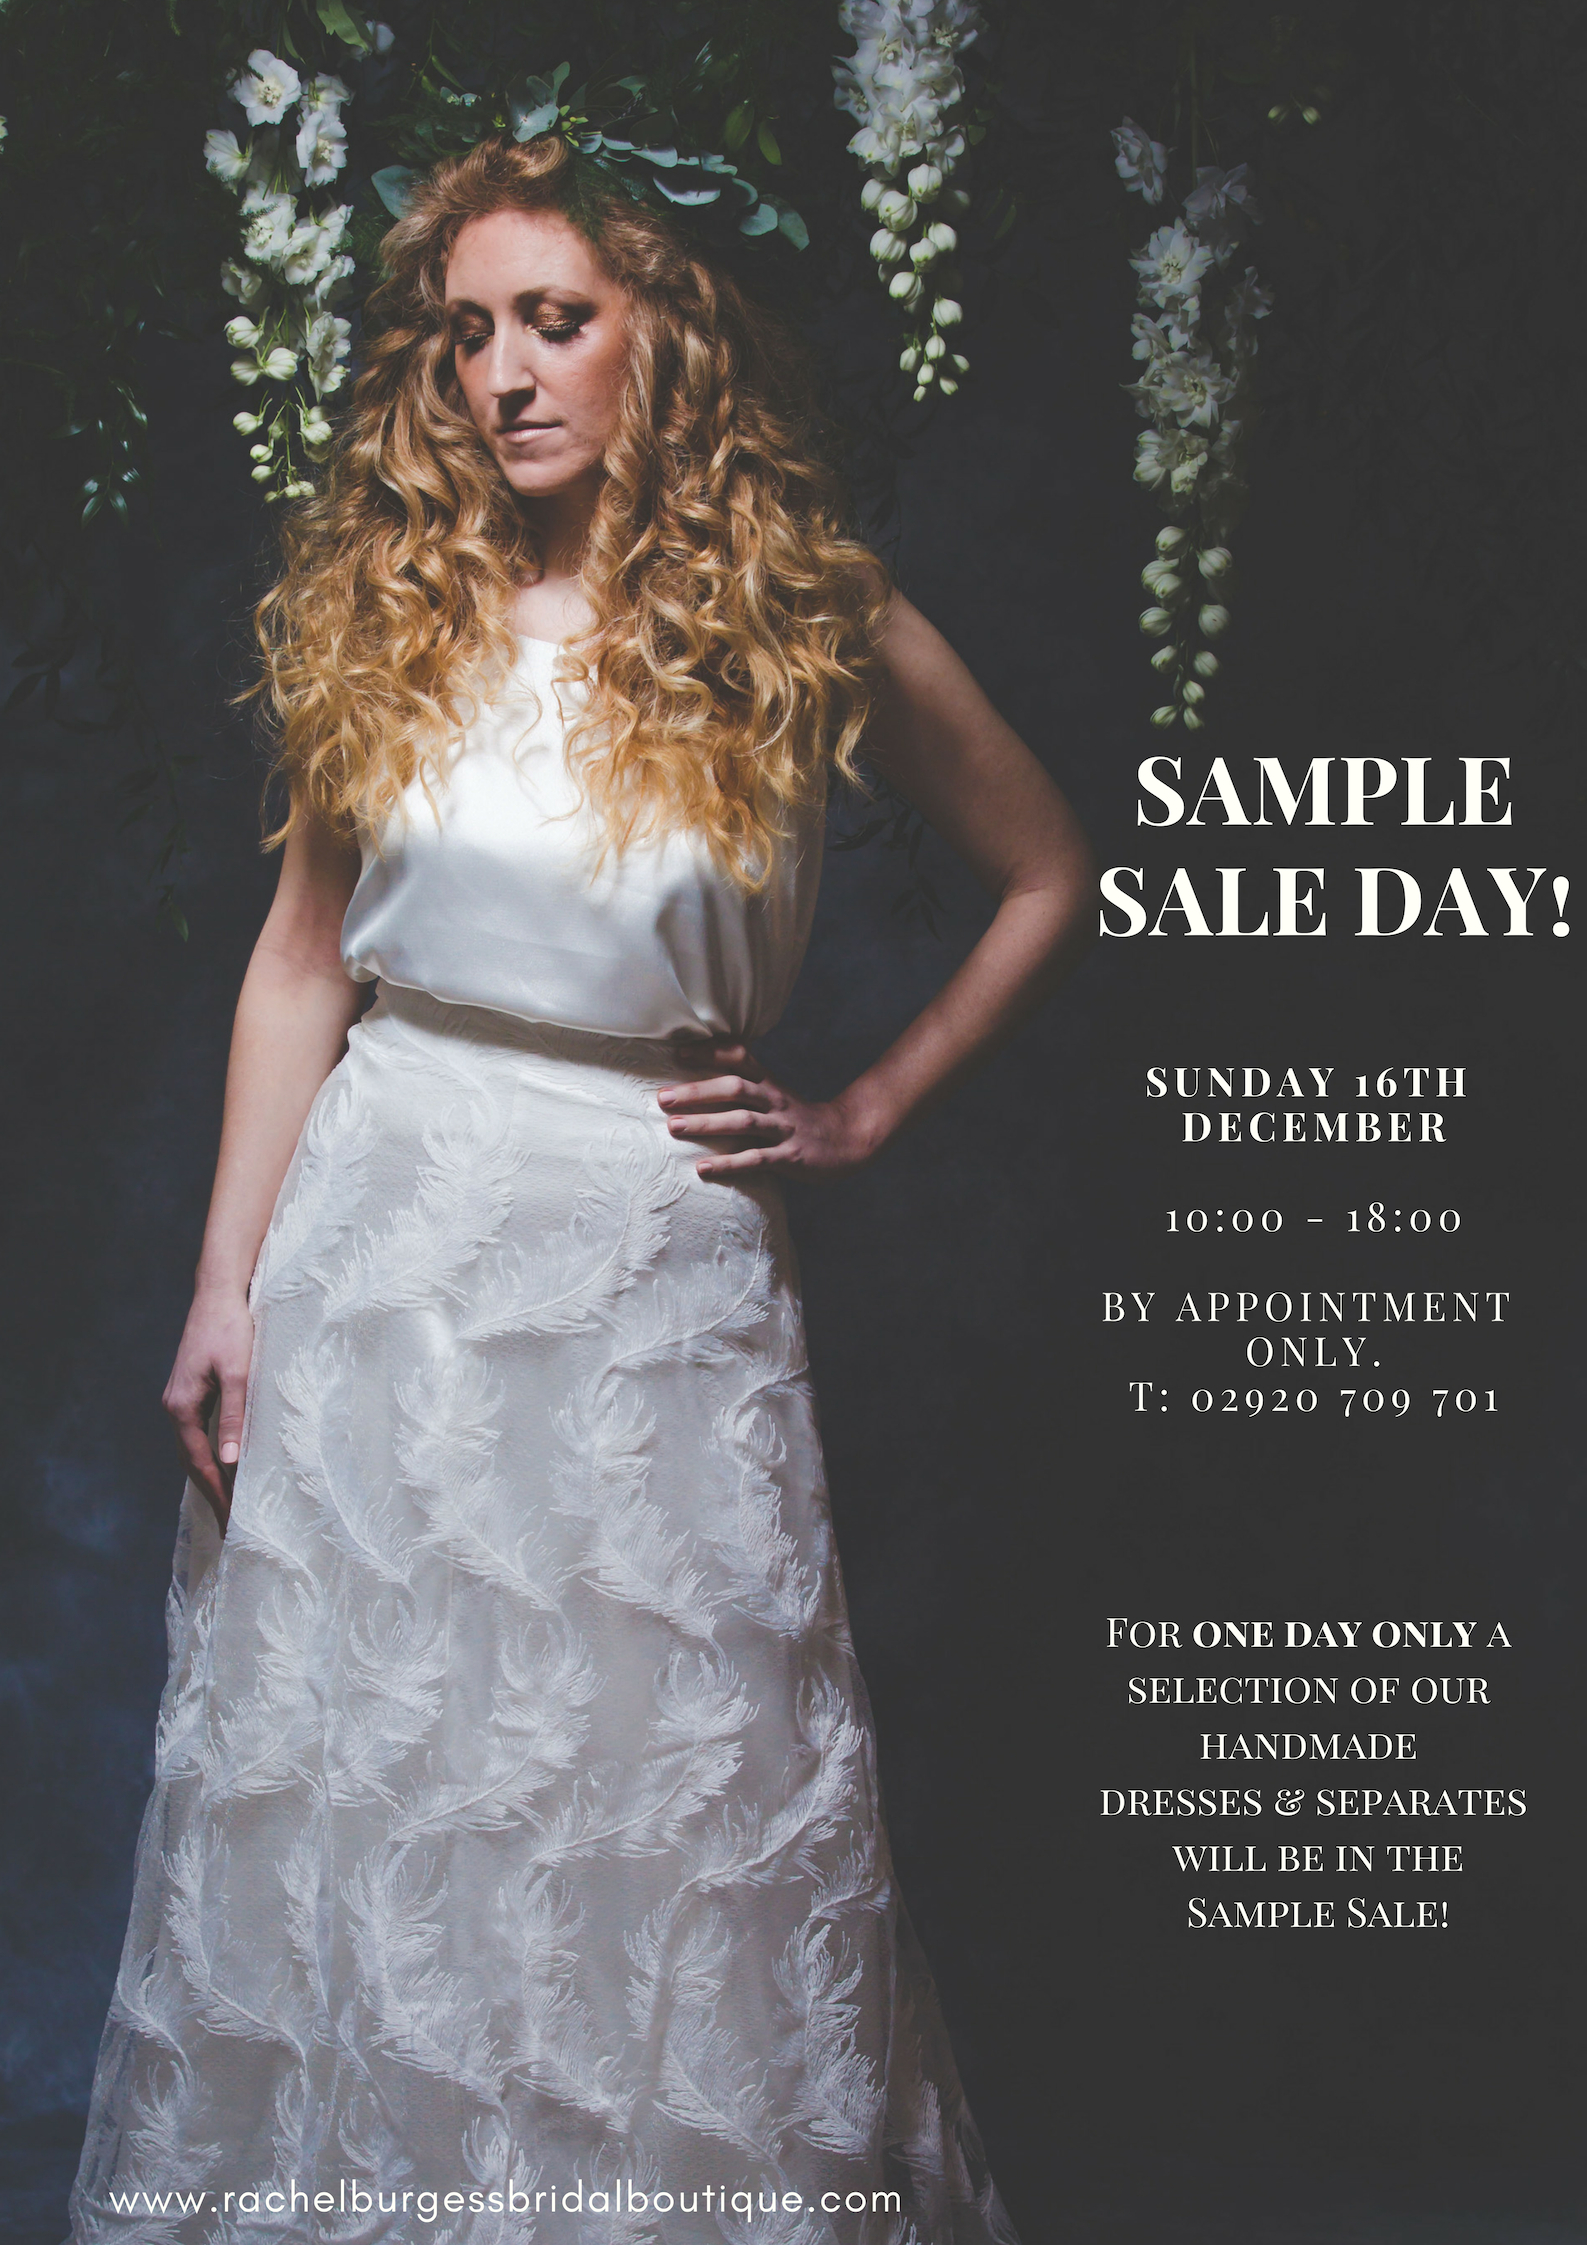 Sample Sale!.jpg